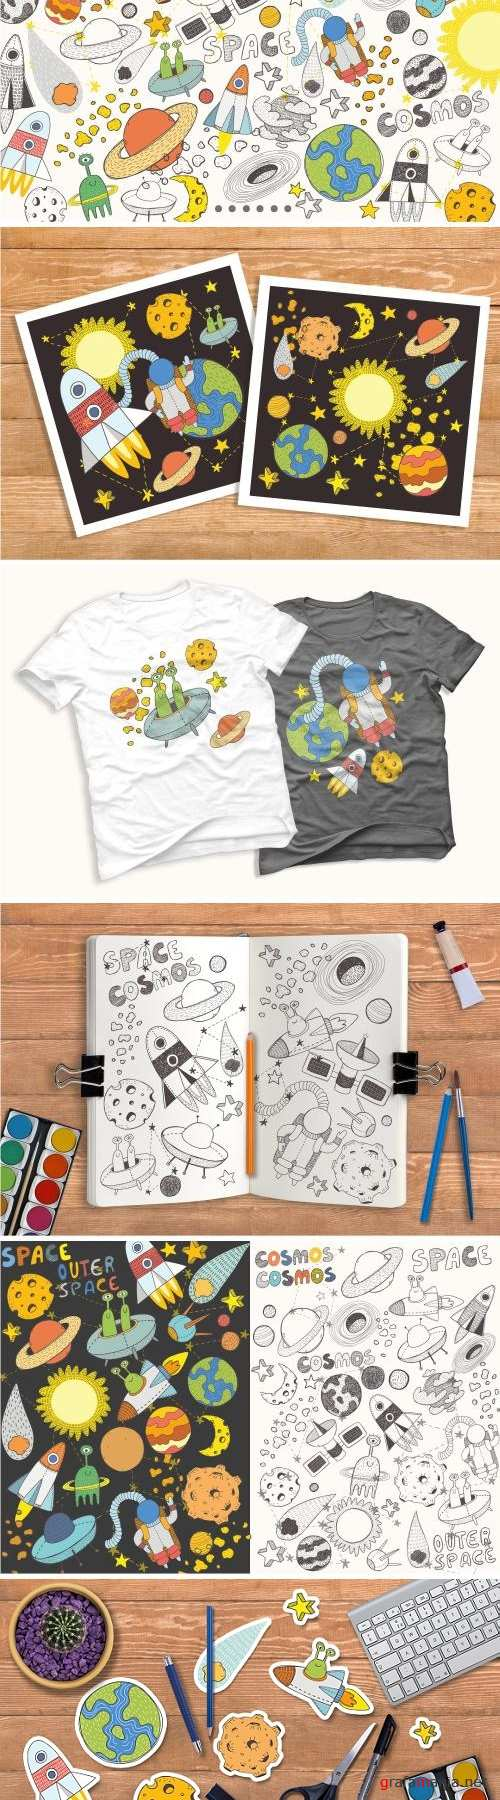 Space objects collection - 2426014